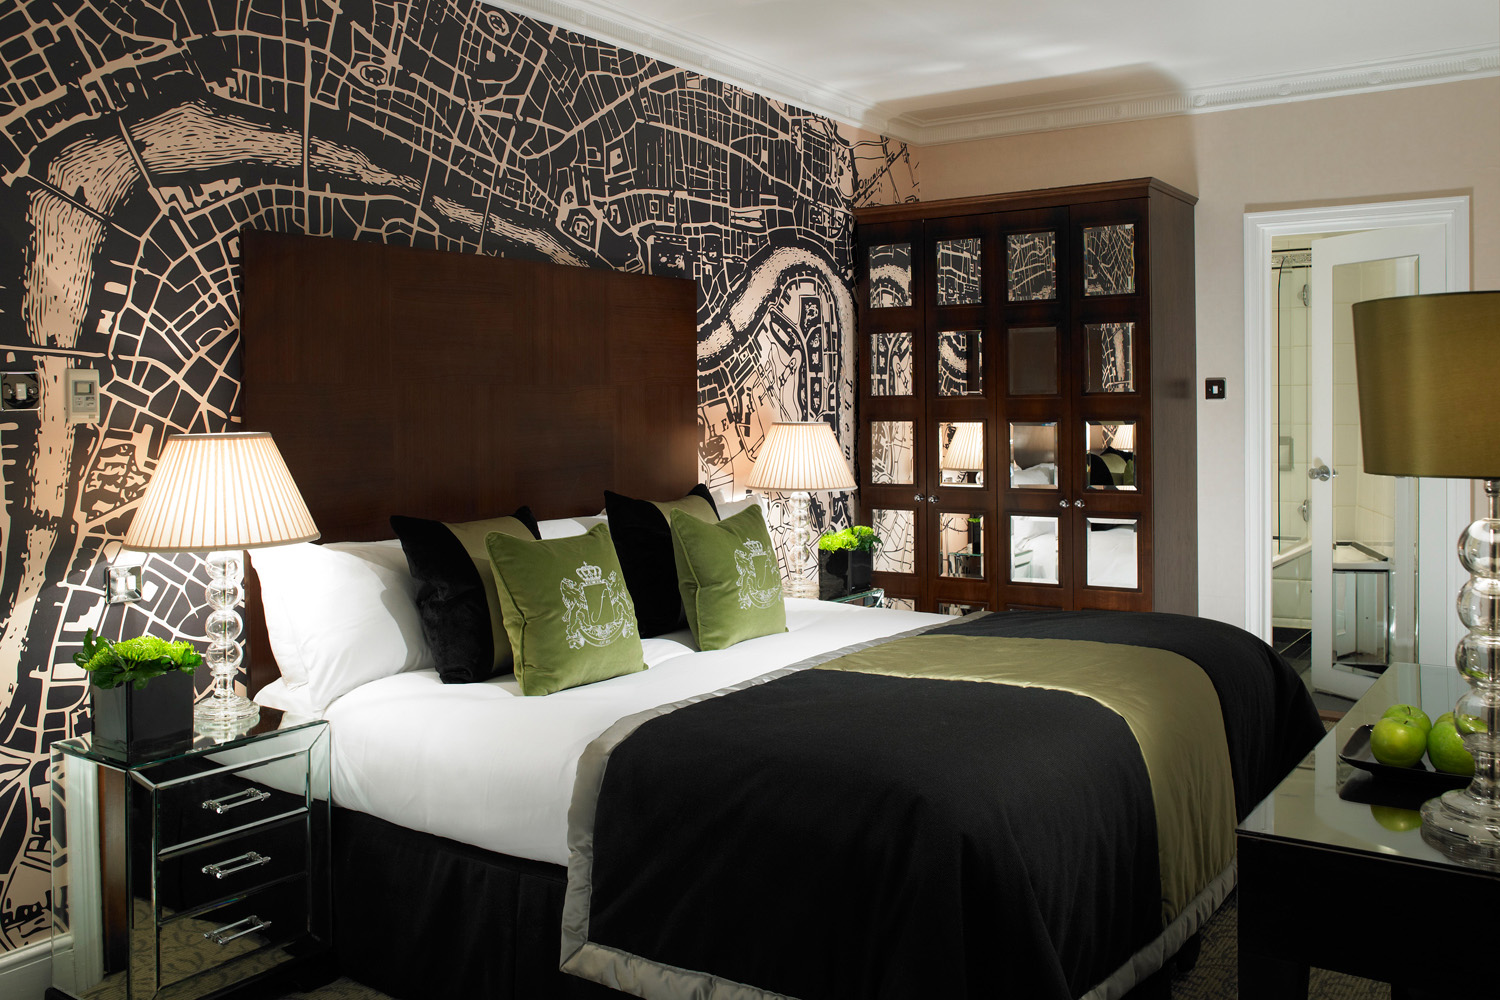 Flemings hotel w1 design box london luxury interior for Designhotel london